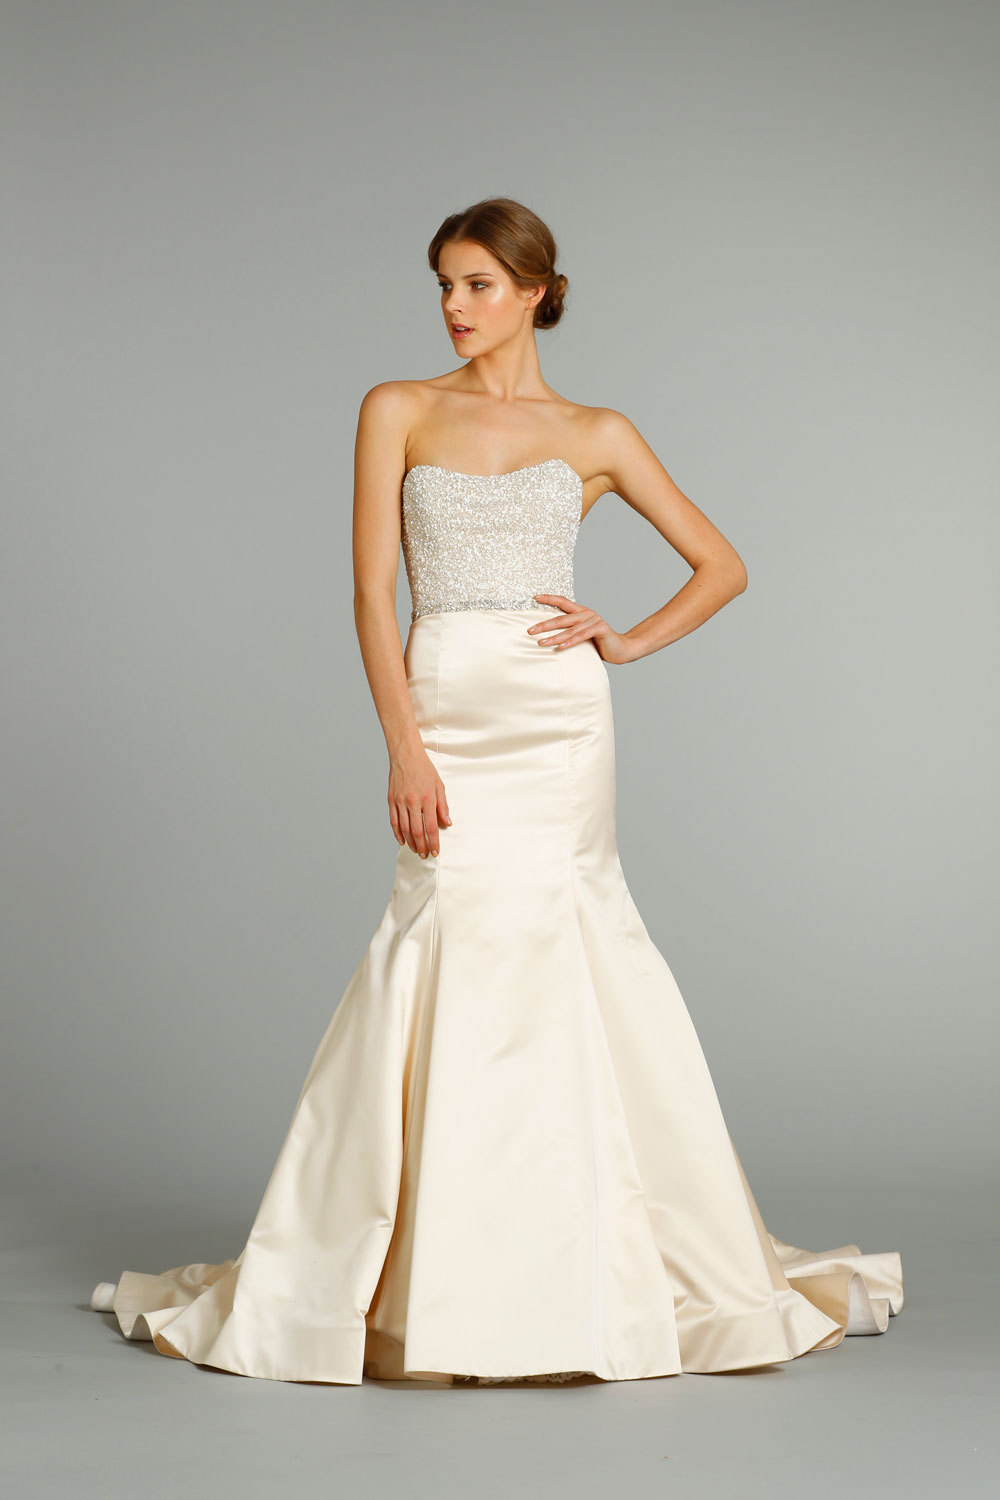 Fall-2012-wedding-dress-jim-hjelm-bridal-gowns-8250.full